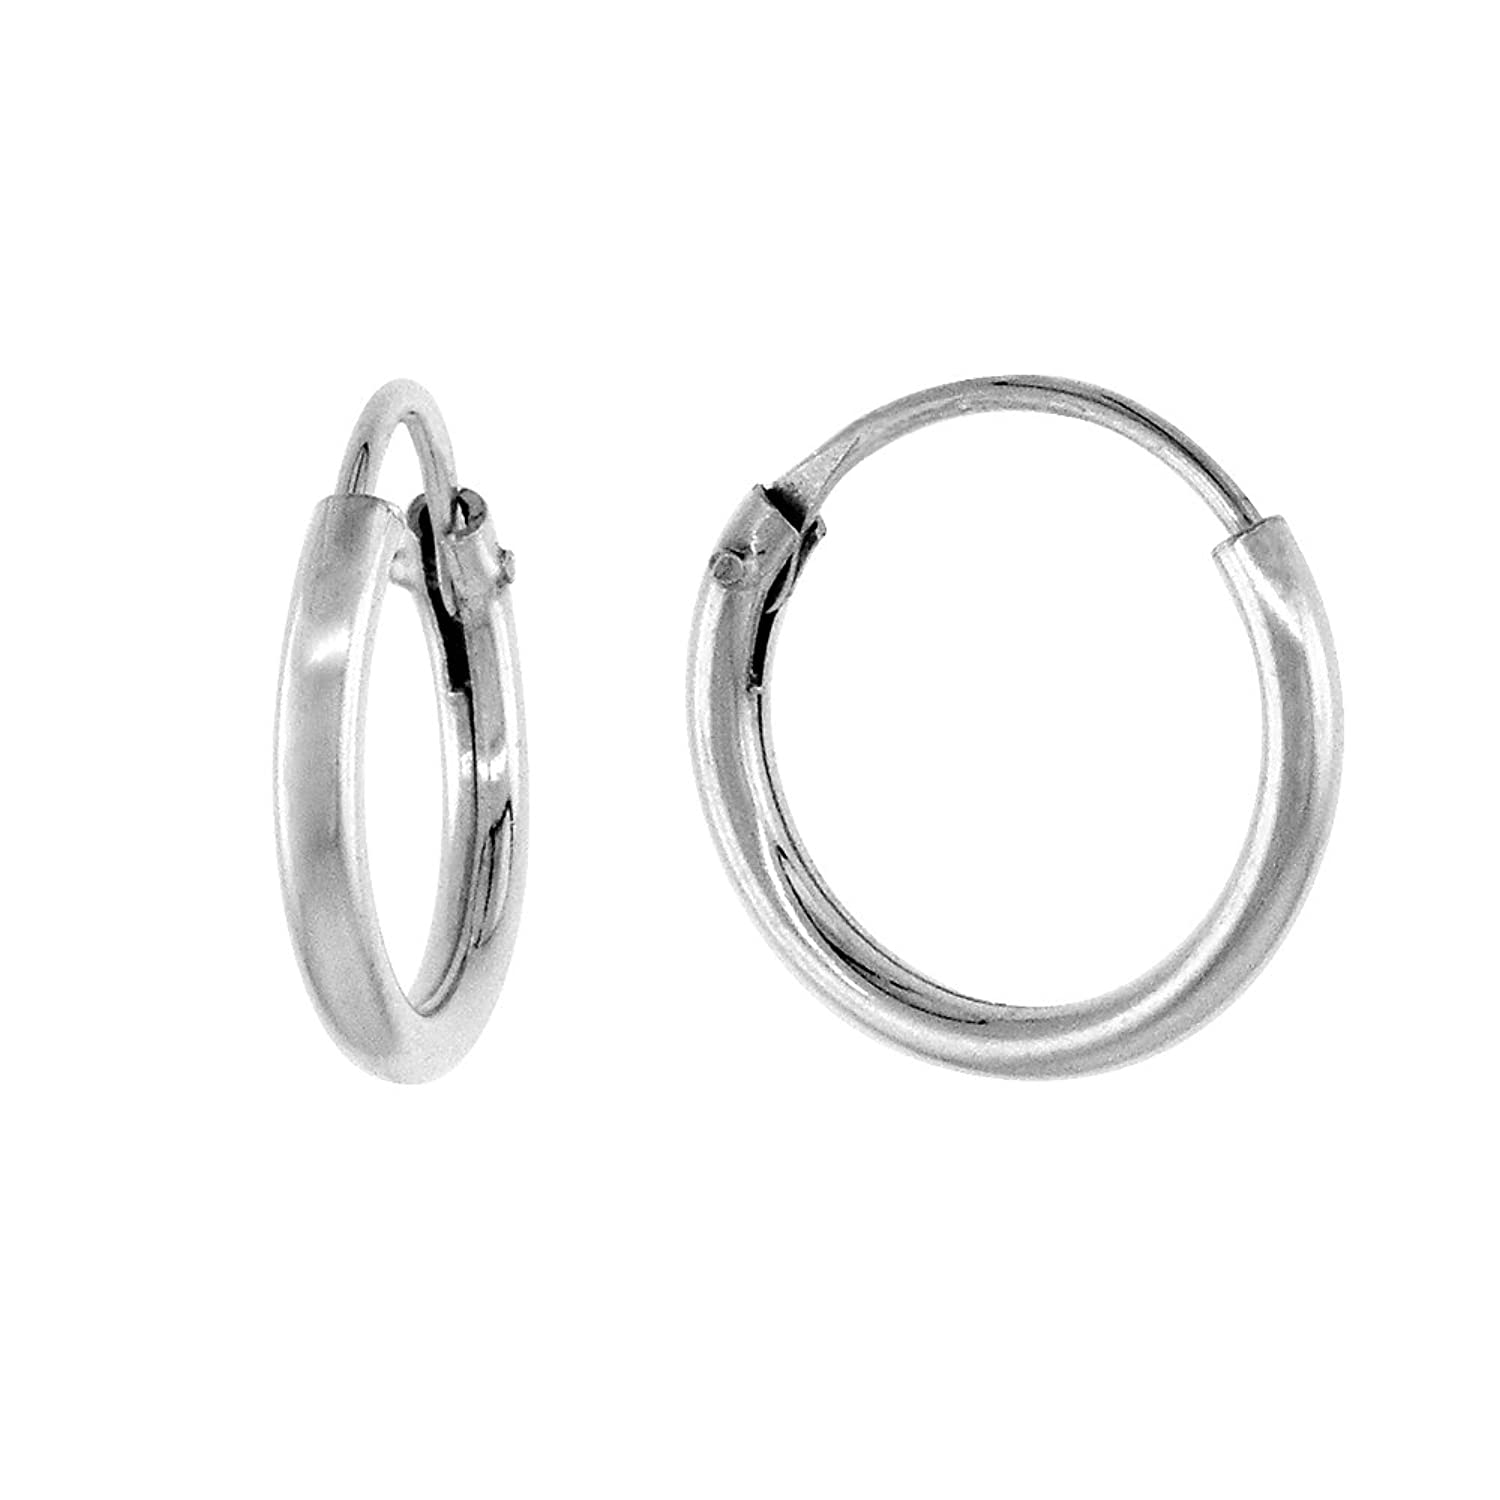 8 Inch Wide: Cartilage Ring: Jewelry